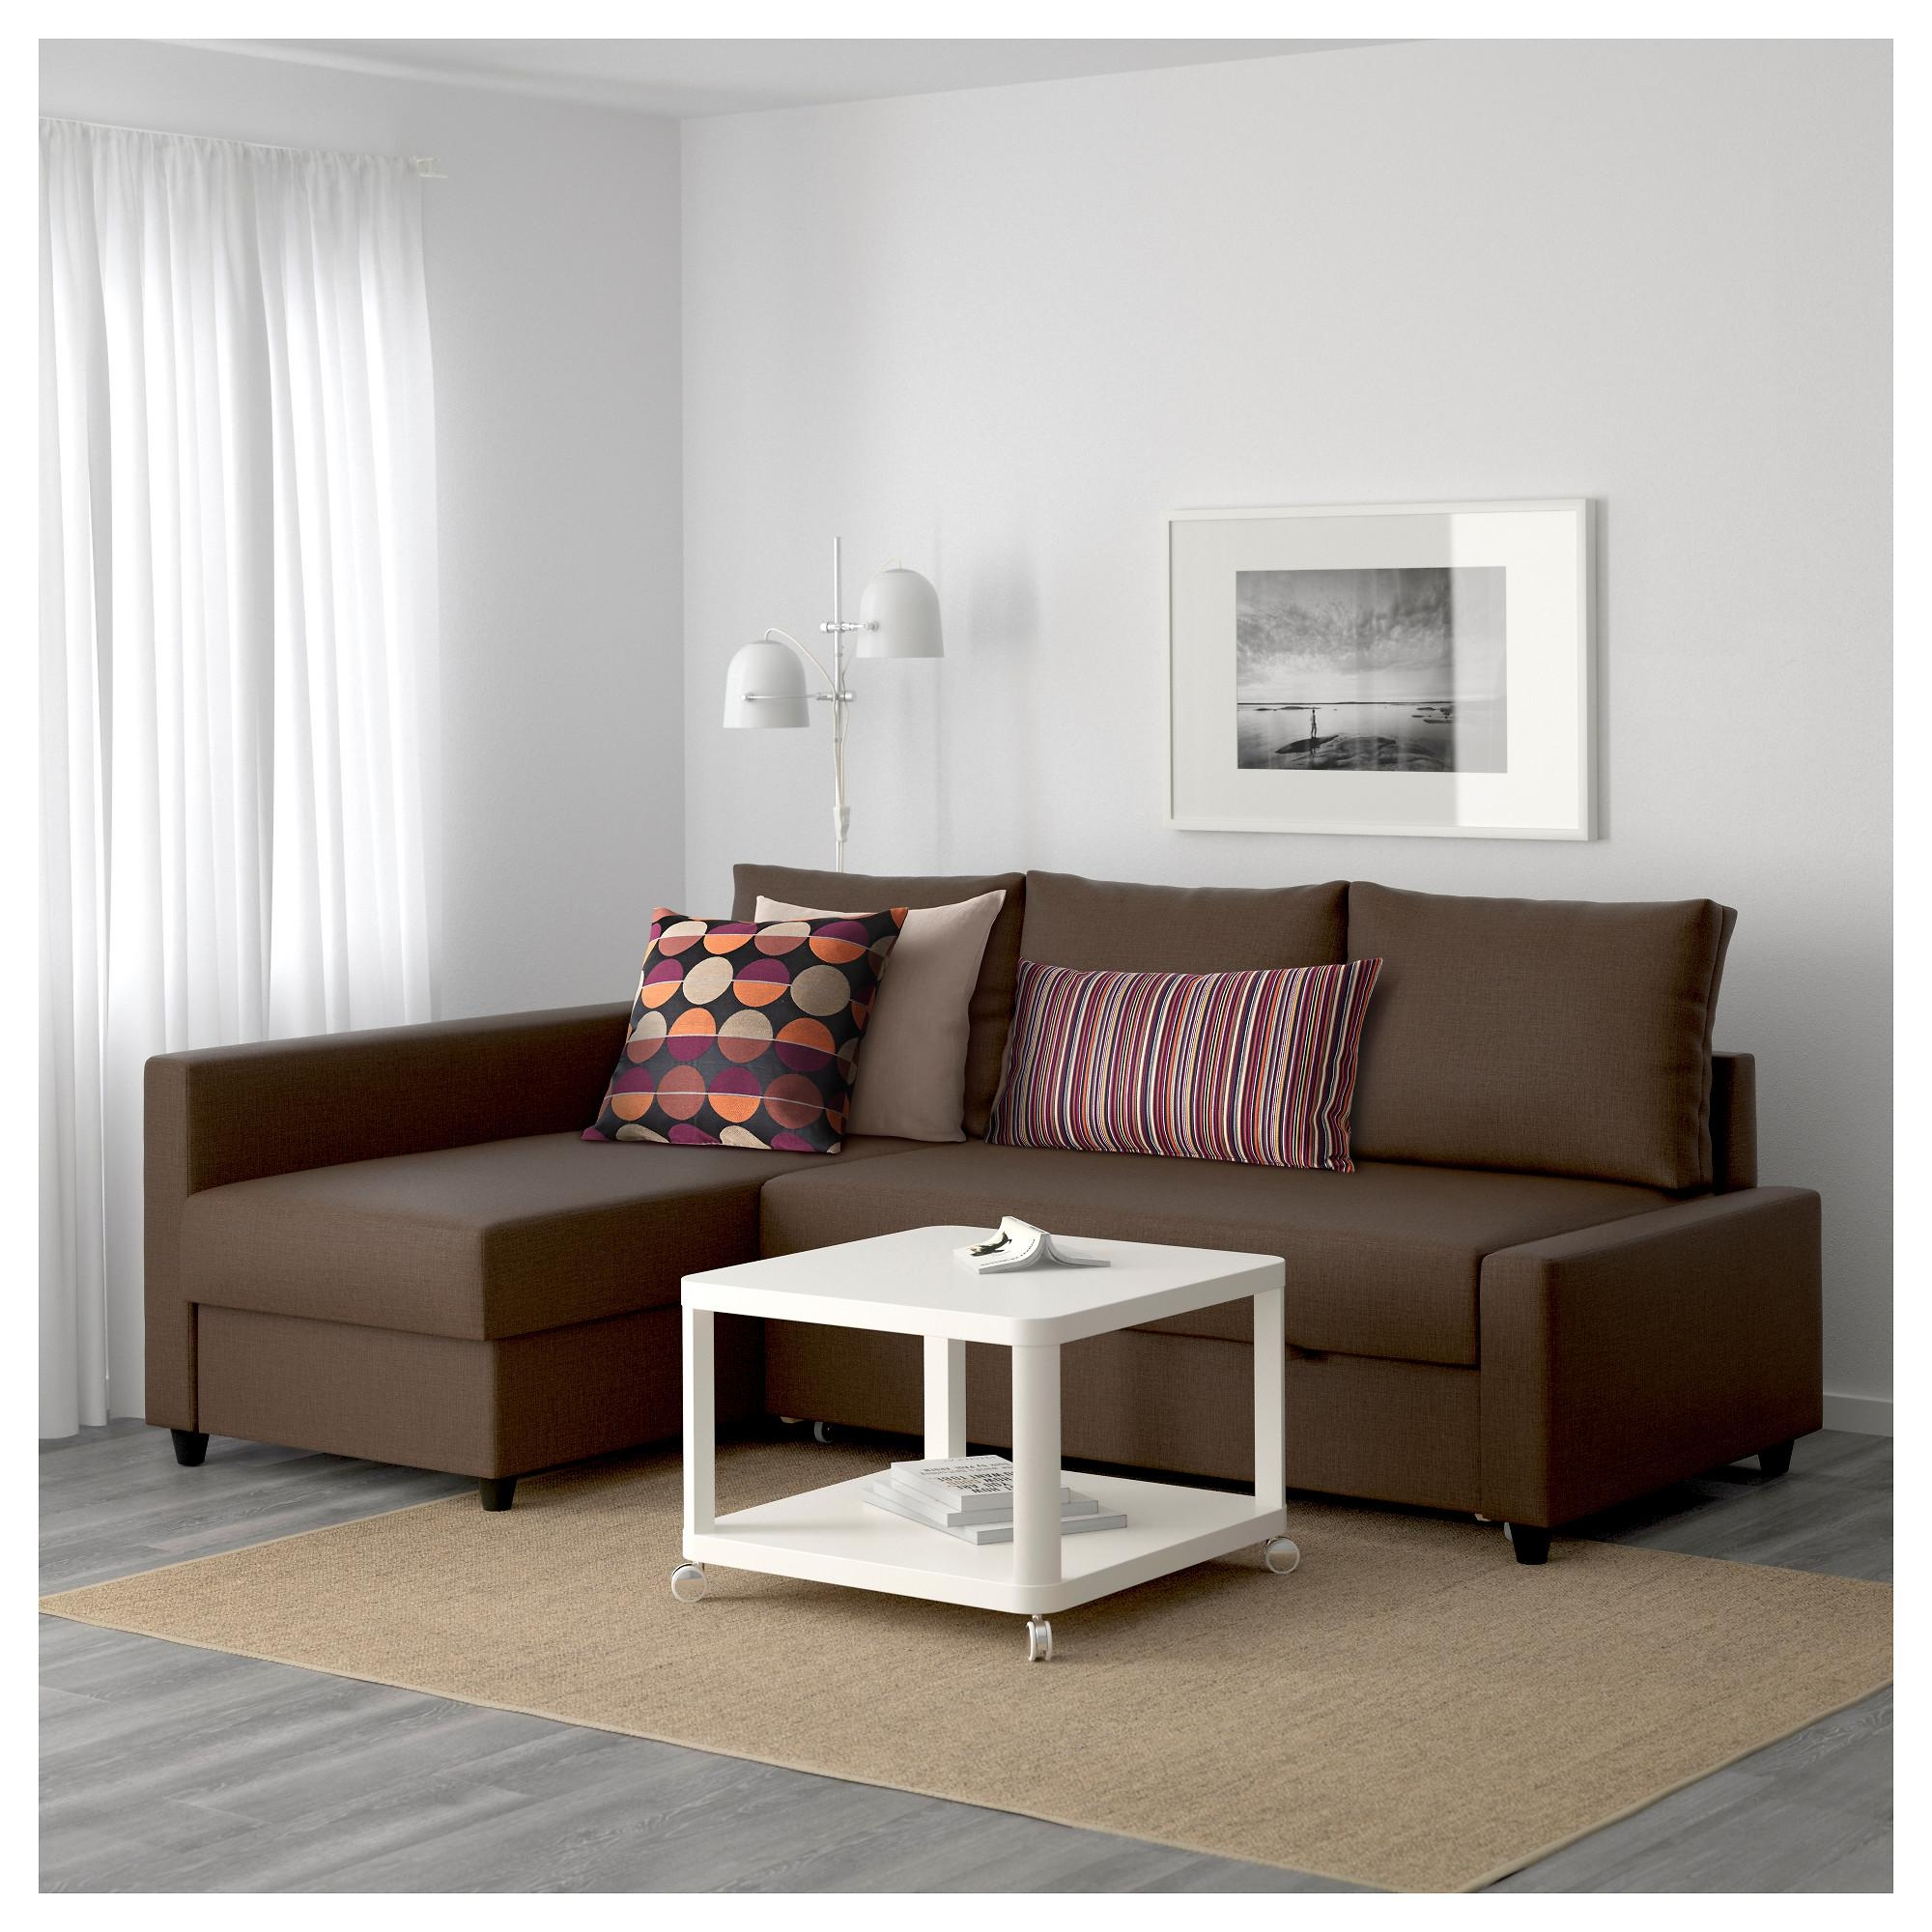 Friheten Corner Sofa Bed With Storage Skiftebo Brown – Ikea Intended For Ikea Sofa Storage (View 12 of 20)